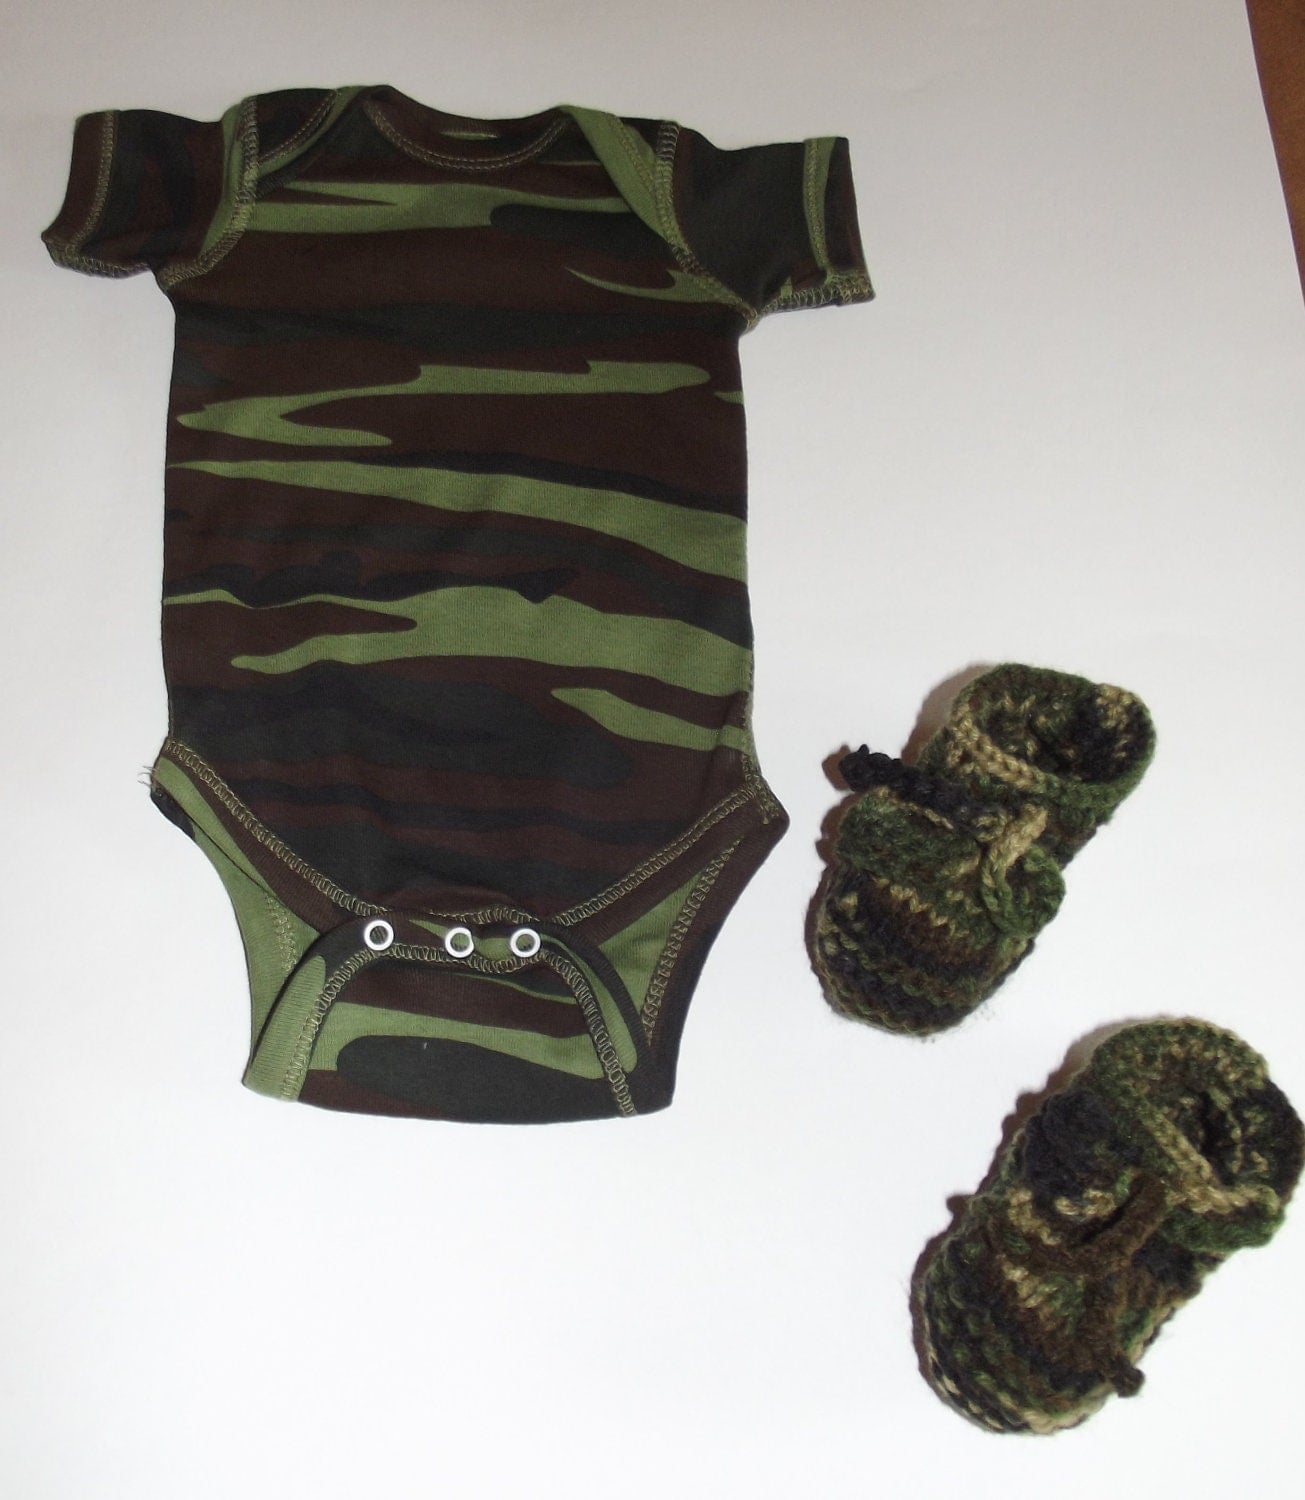 Find great deals on eBay for Camo Baby Clothes in Baby Boys' Outfits and Sets (Newborn-5T). Shop with confidence.